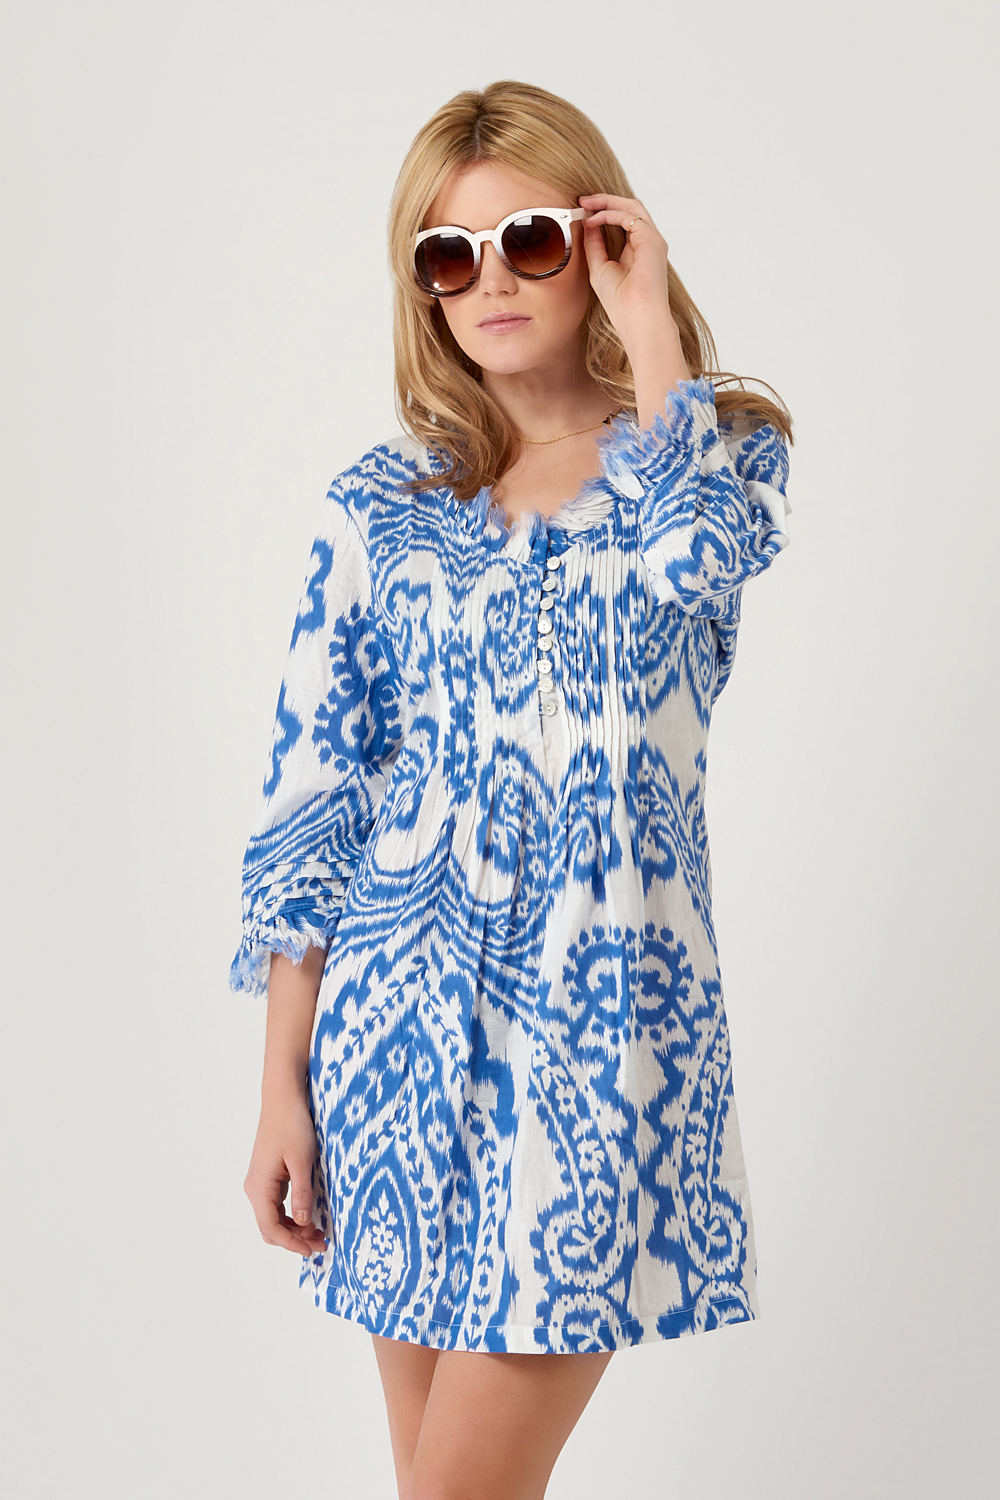 At Last Annabel - Blue Ikat ef926ea77